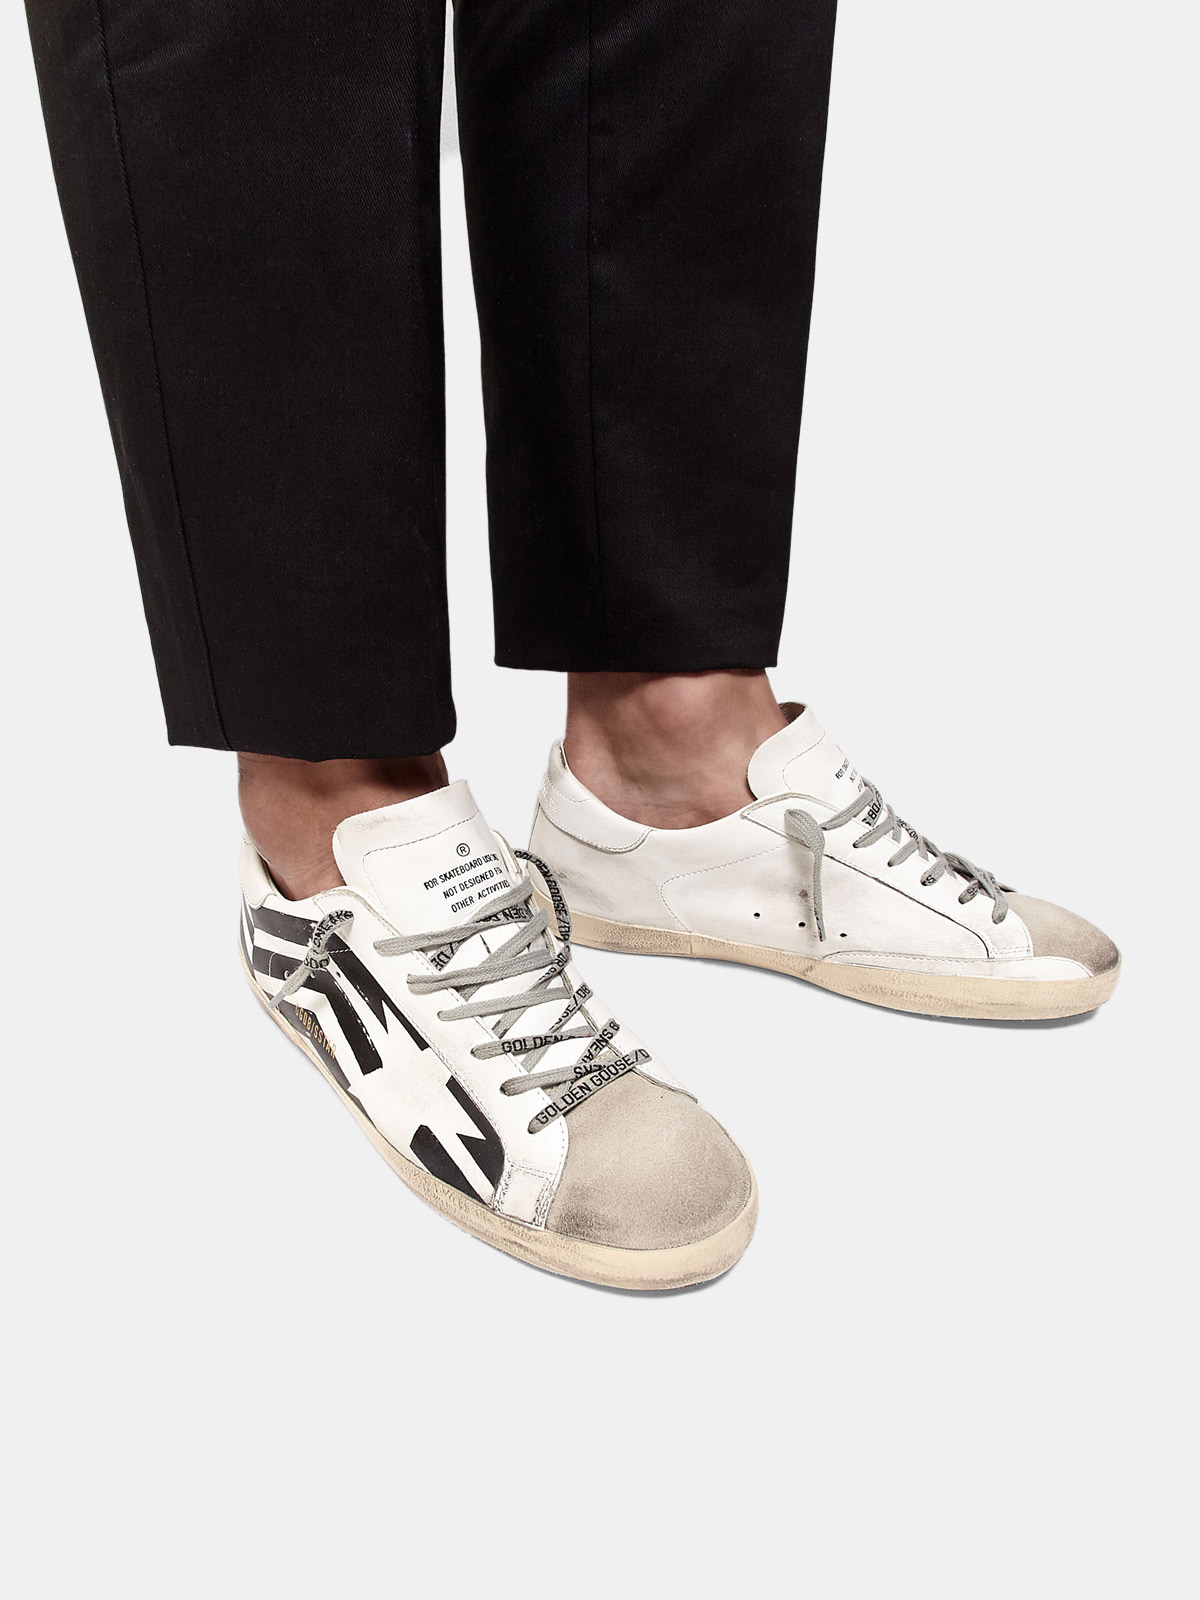 Golden Goose - Super-Star sneakers with GGDB flag print in